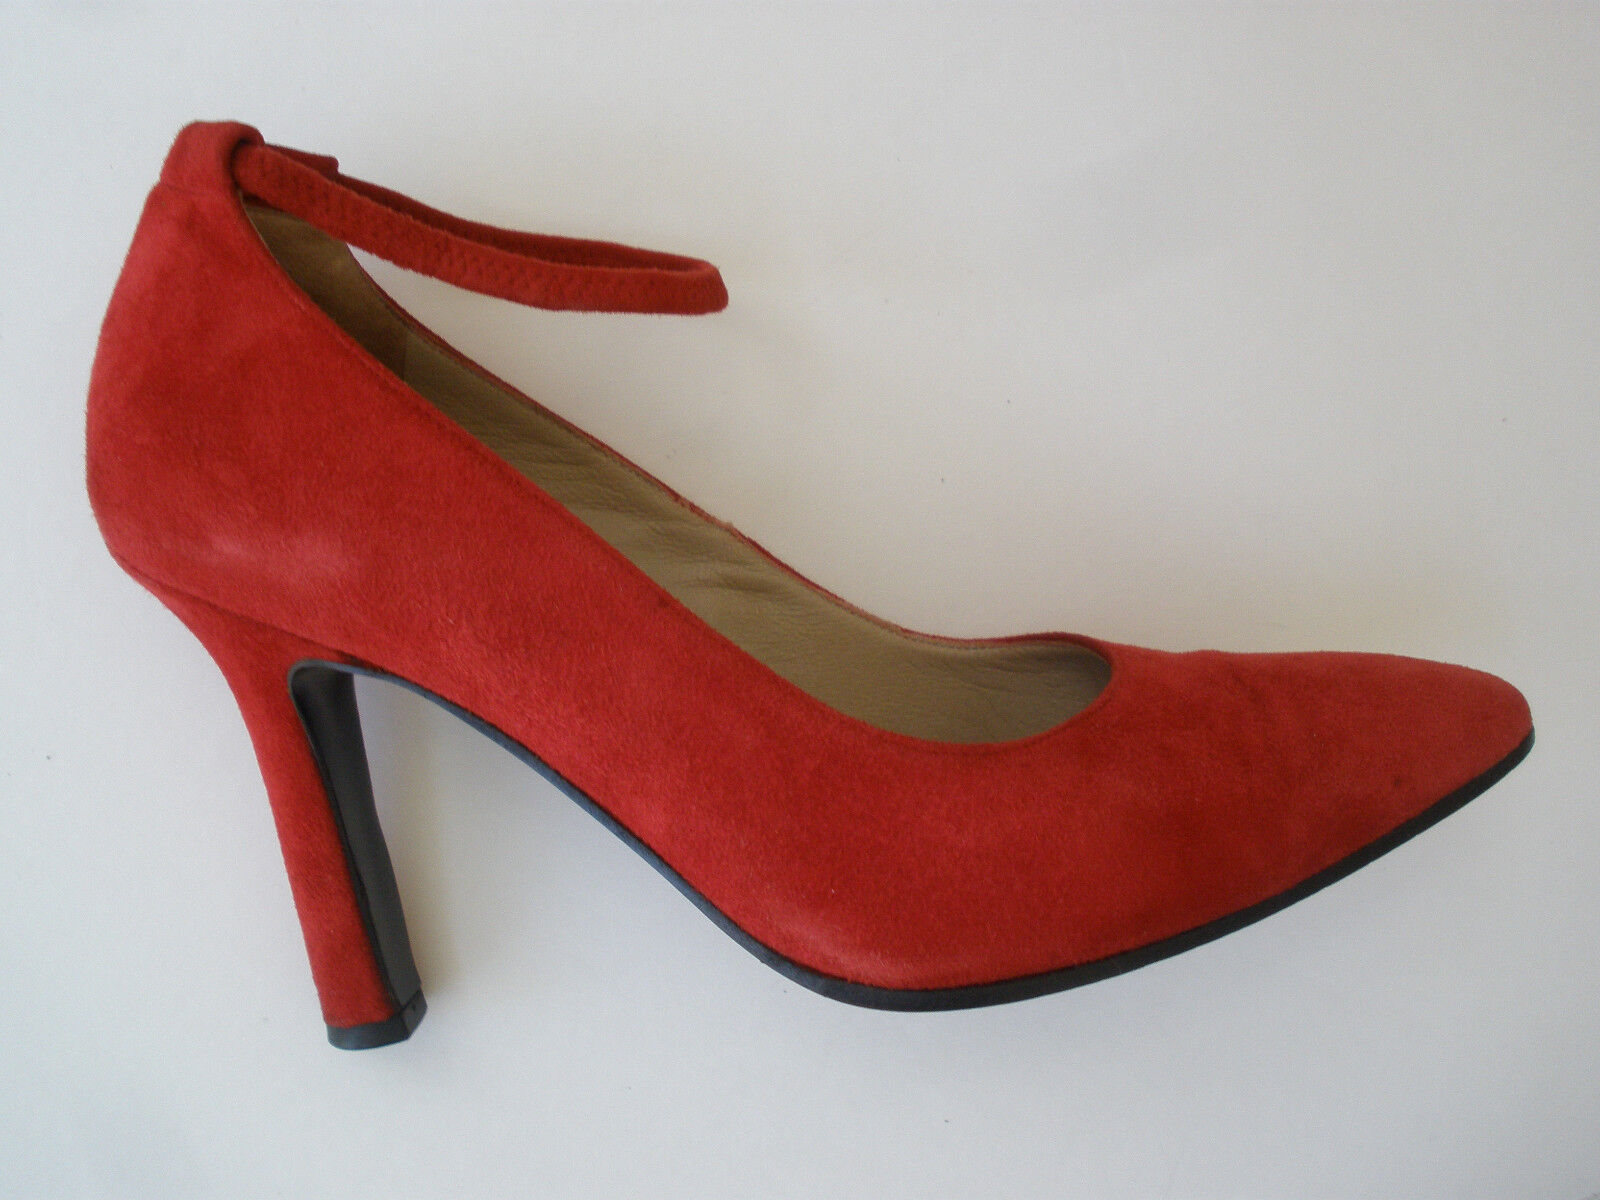 VIA SPIGA ROT LEATHER HOT PUMP HEELS SIZE 6.5B HOT LEATHER SEXY  ITALY WOW UNIQUE 2c5312